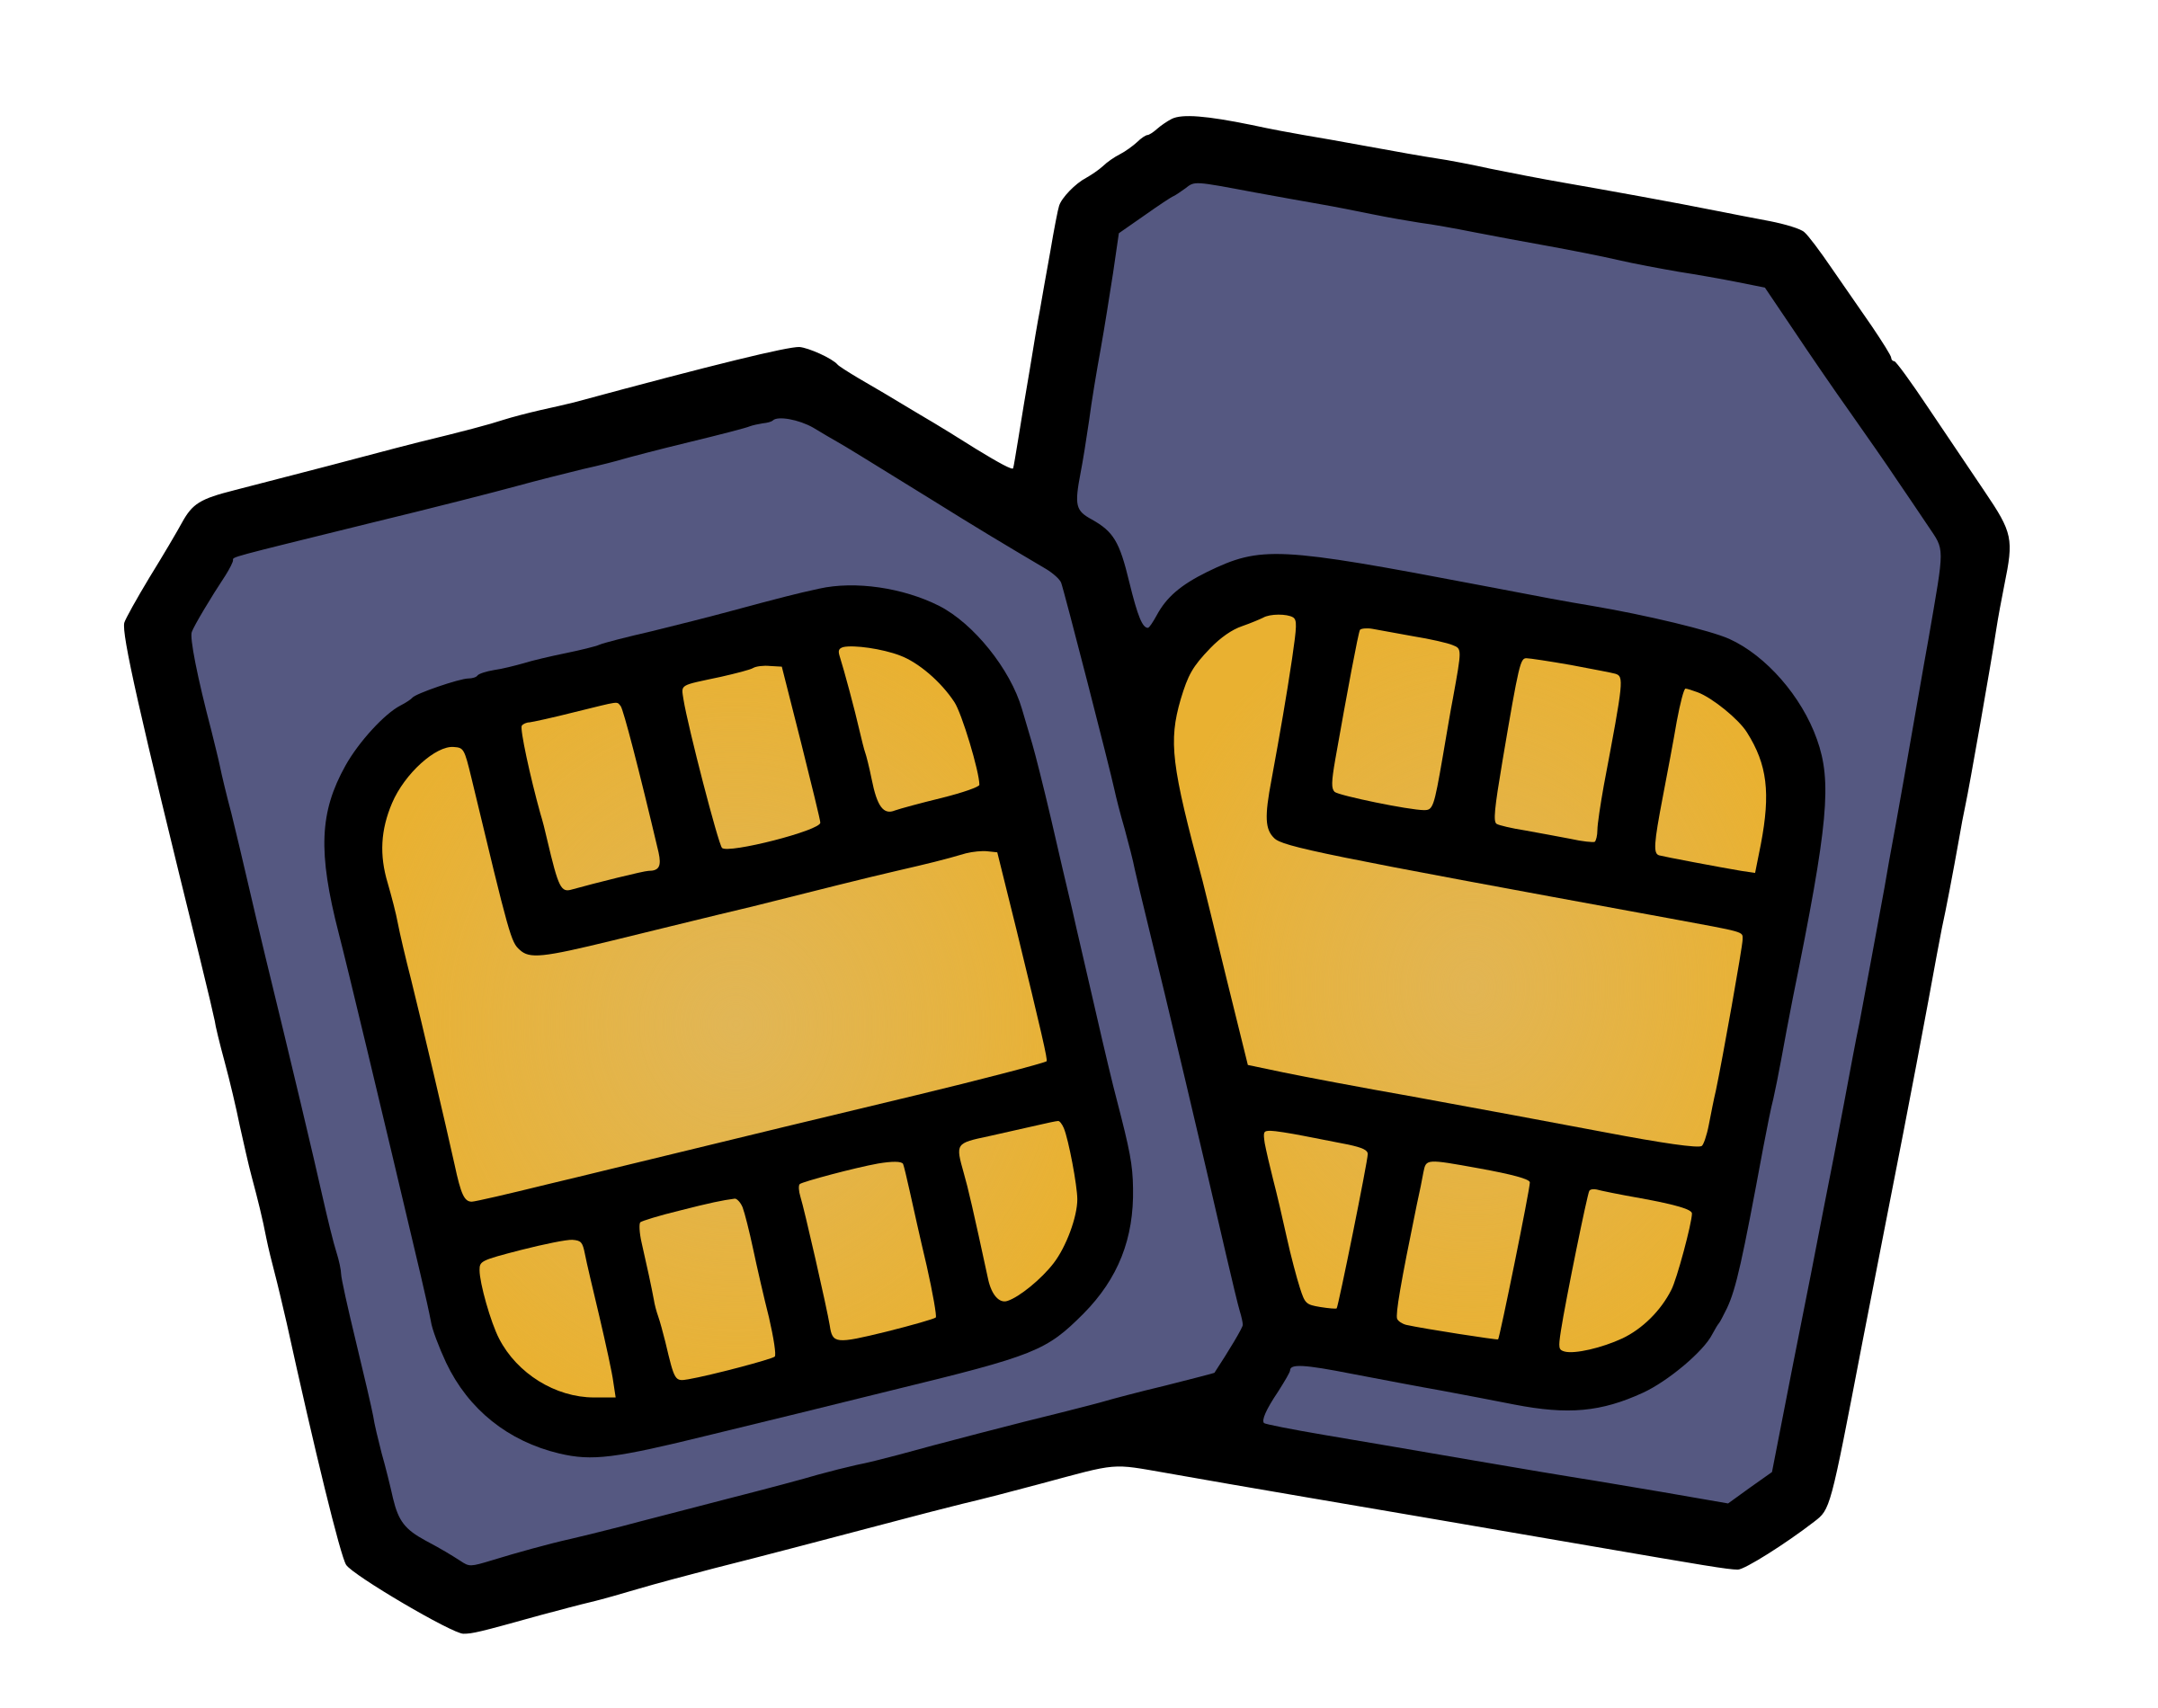 Two SIM Cards - Colour by j4p4n